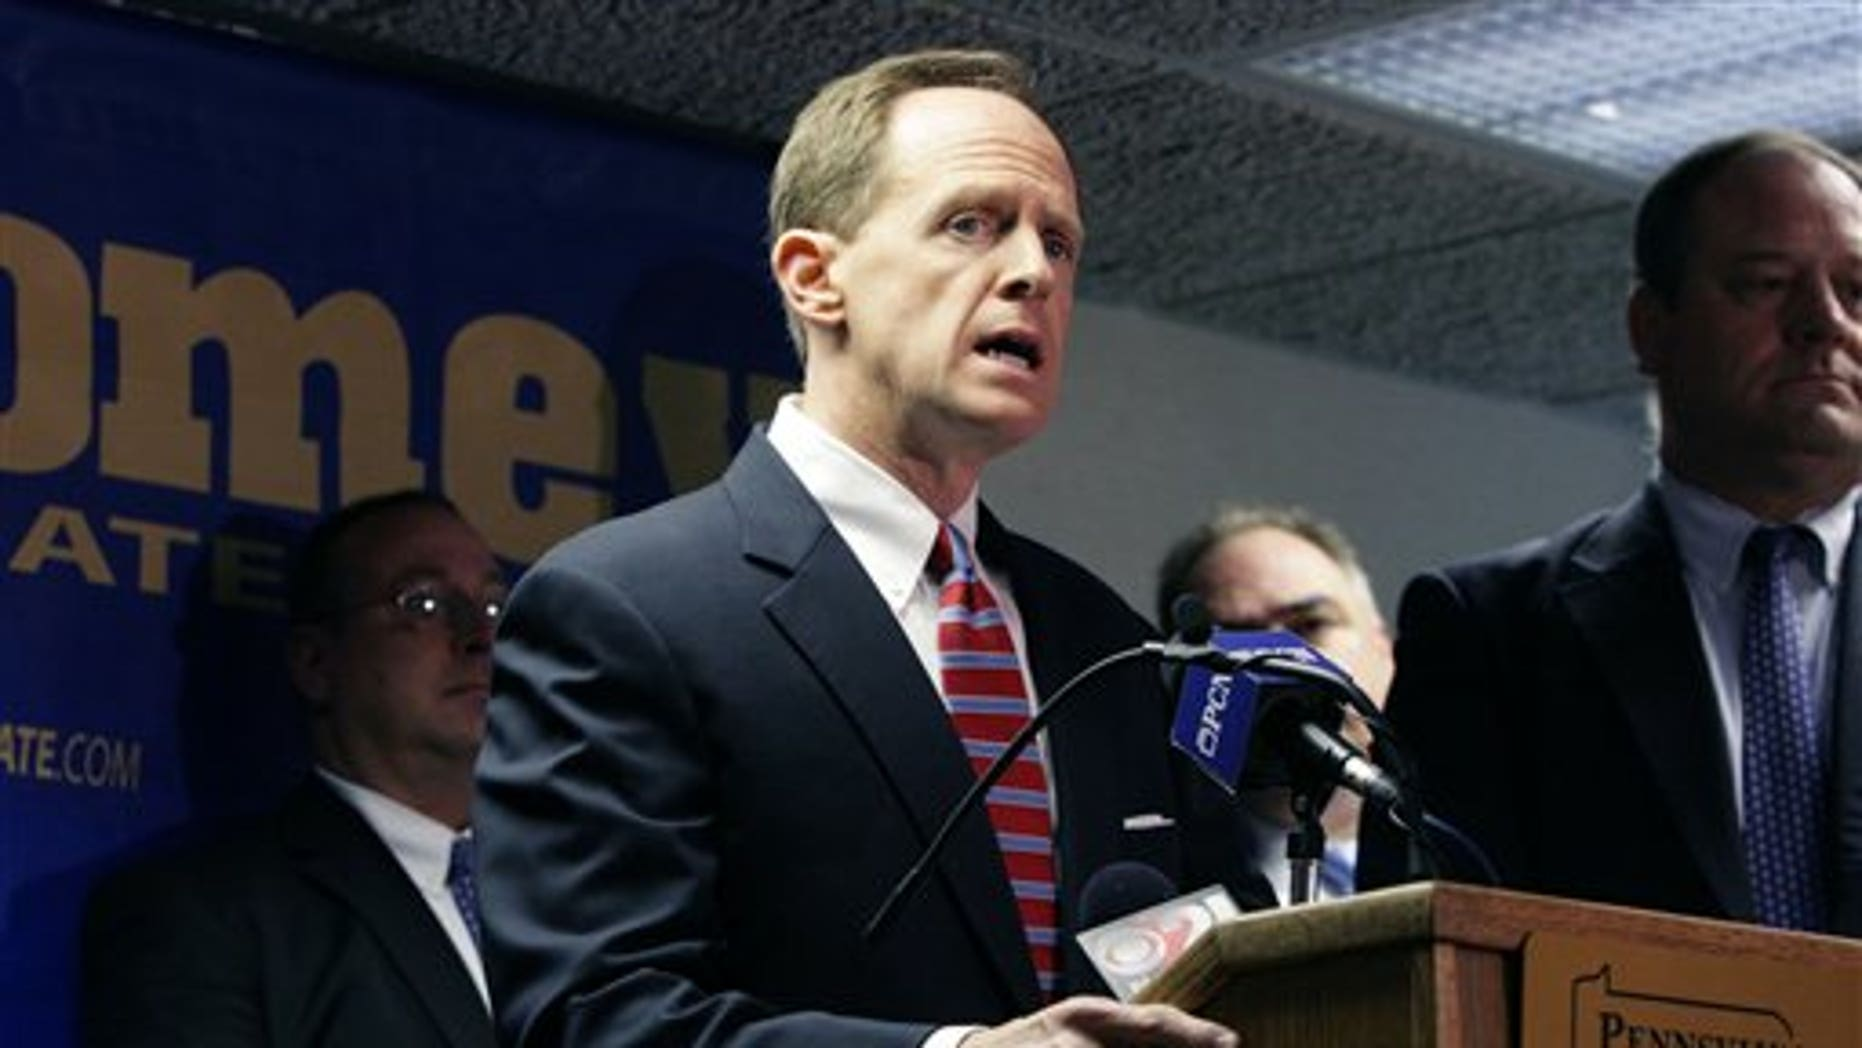 U.S. Senate candidate Pat Toomey talks during a news conference at which he received an official endorsement from the Pennsylvania State Troopers Association on Tuesday, Oct. 12, 2010, in Harrisburg, Pa. (AP Photo/Ann Foster)